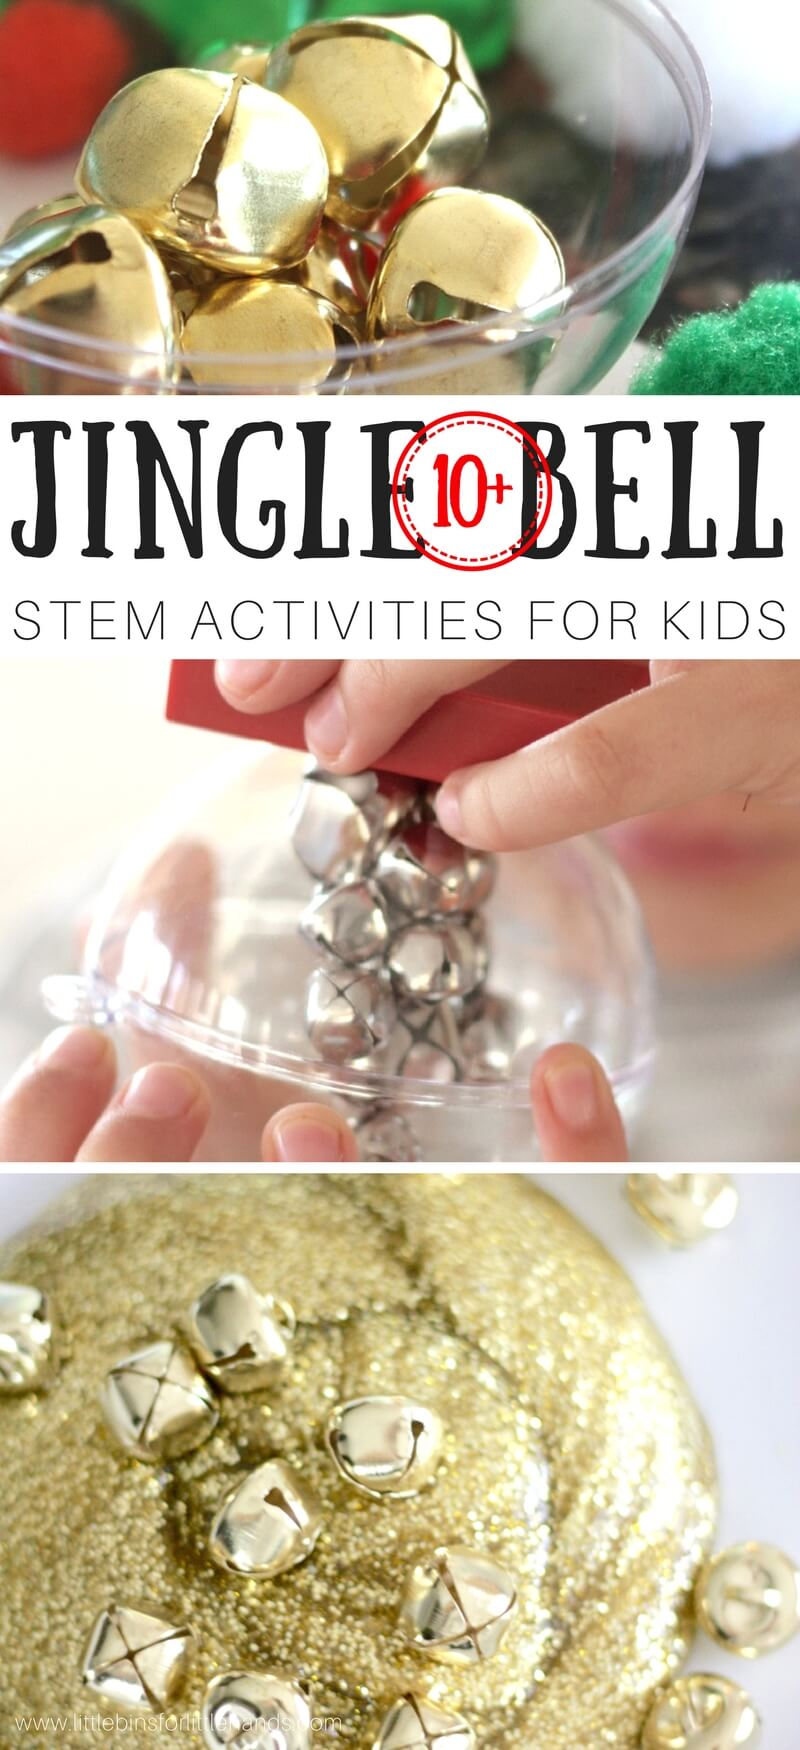 You don't have to leave the jingle bells for Santa's sleigh and reindeer! We are going to show you how much fun it is to learn and play with them all season long using easy Christmas STEM activities. I love the sound of jingle bells, and that's one of the 5 senses too! Check out our jingle bell STEM activities to find something new and simple to set up this holiday season. We make science and STEM perfect for every season around here.